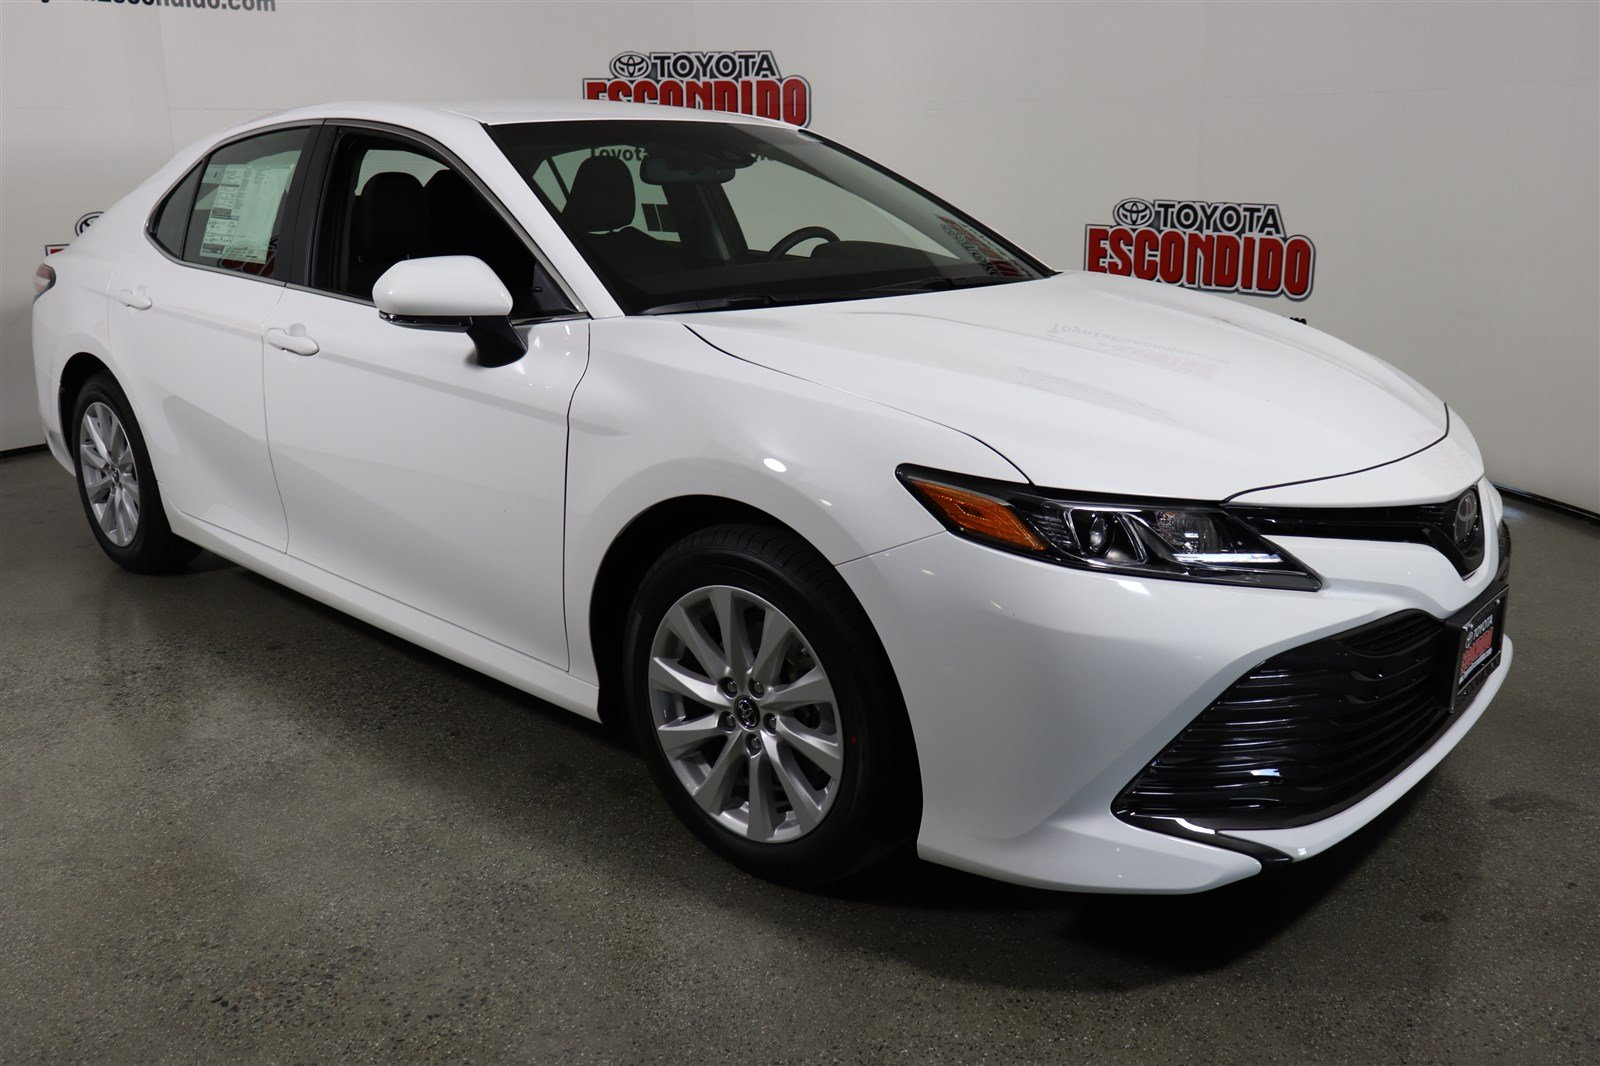 new 2018 toyota camry le 4dr car in escondido 1018339 toyota escondido. Black Bedroom Furniture Sets. Home Design Ideas